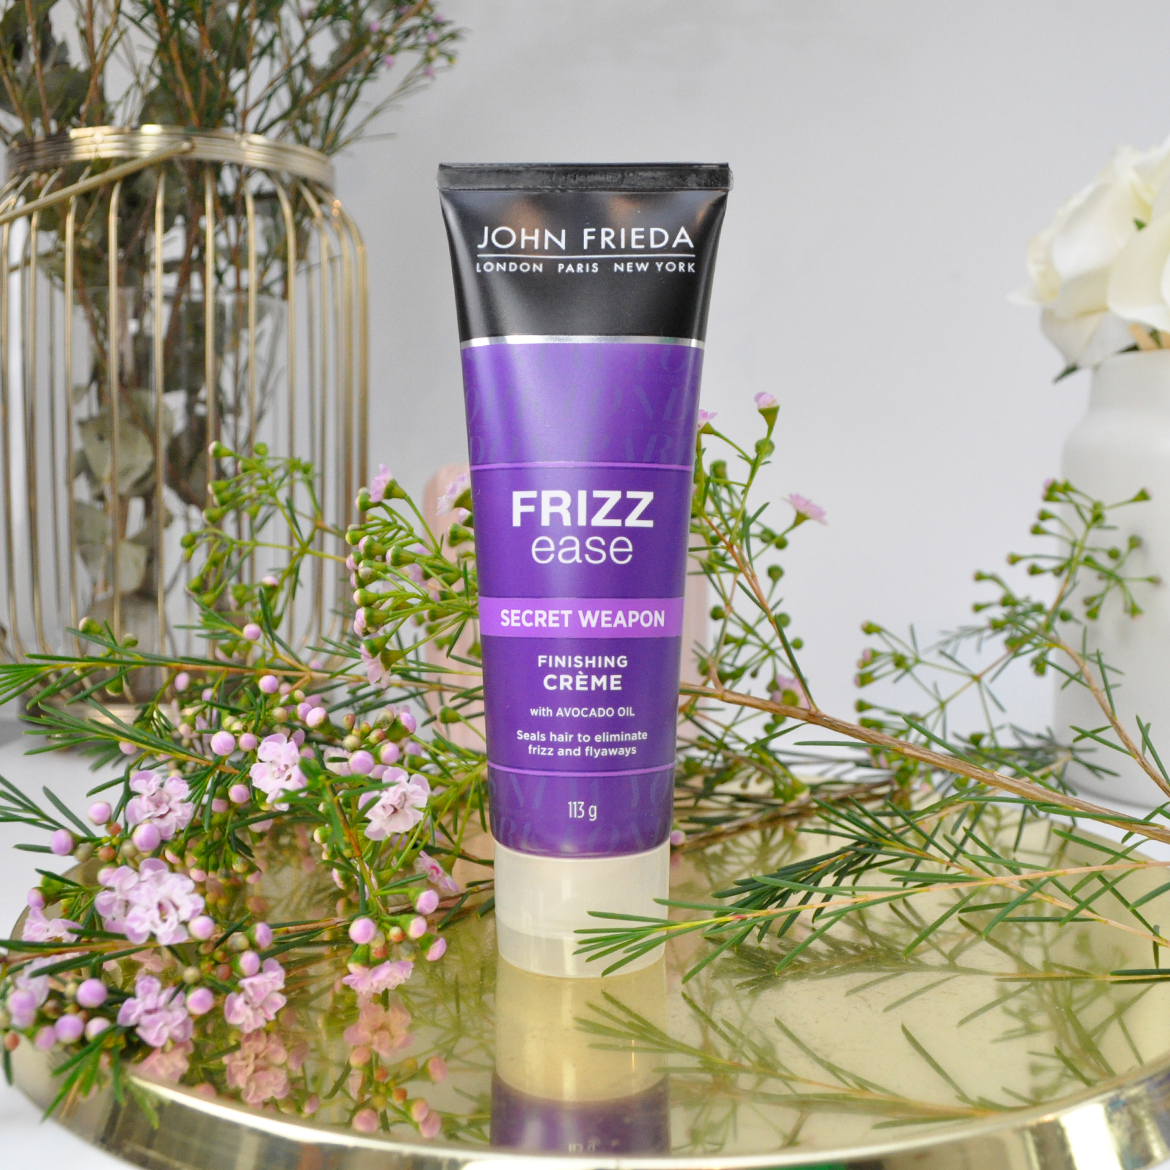 John Frieda Frizz Ease Secret Weapon